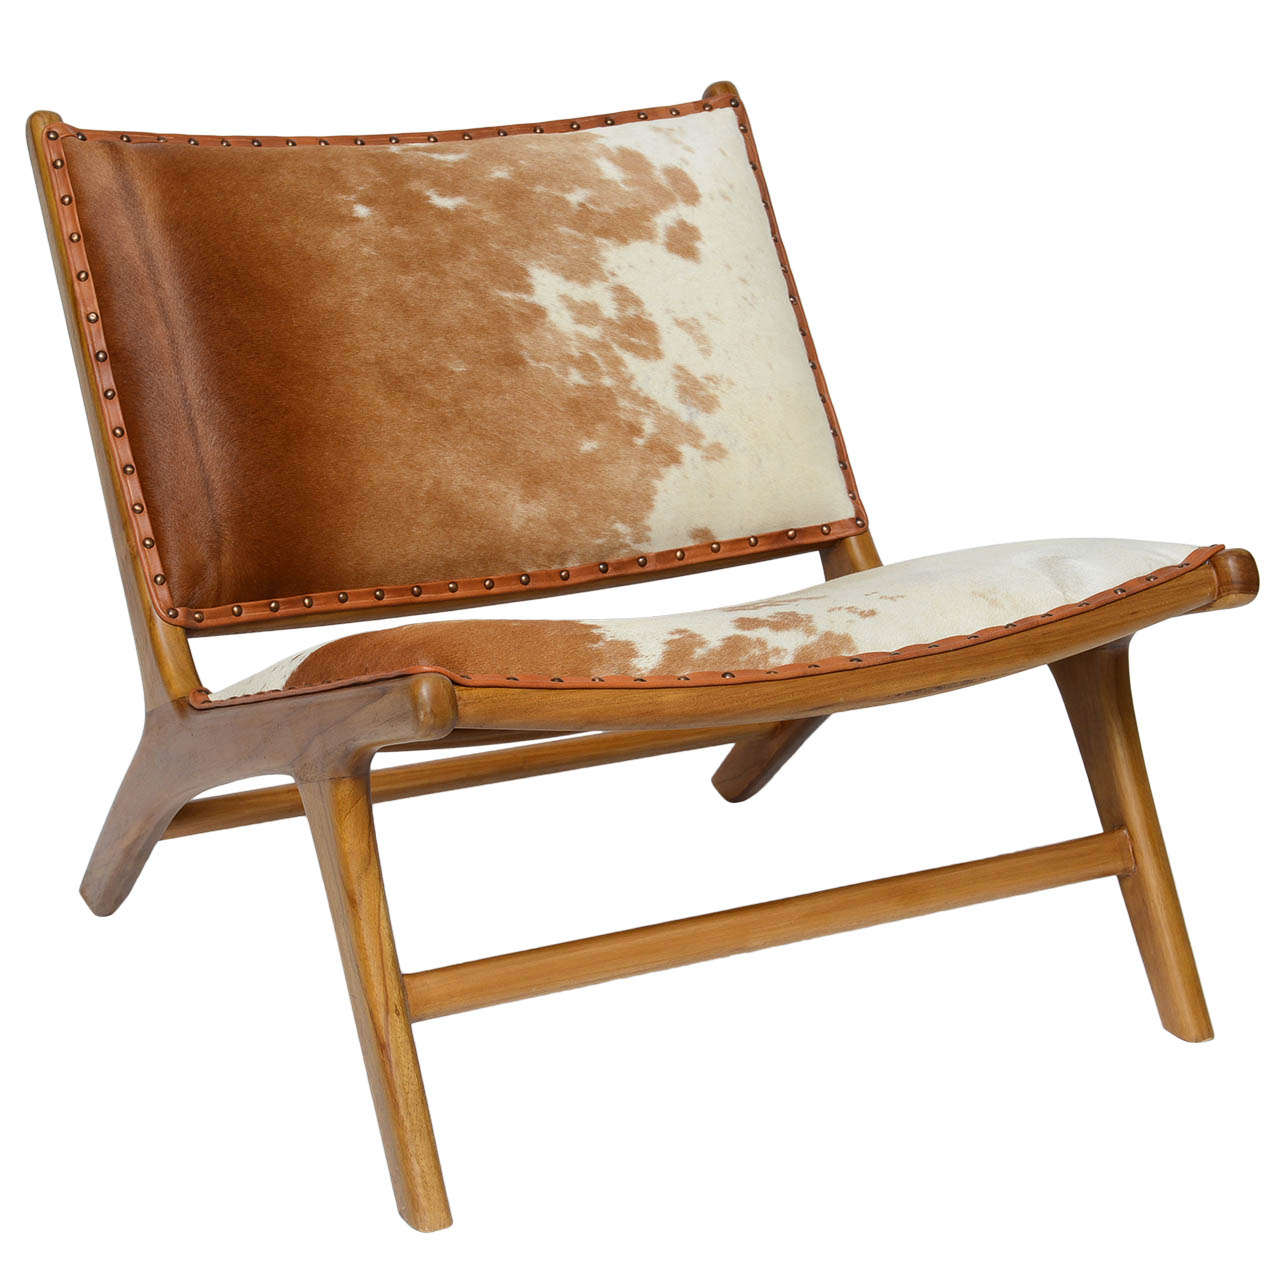 "Teak Chair the ""hampton chair"" handmade teak chair at 1stdibs"